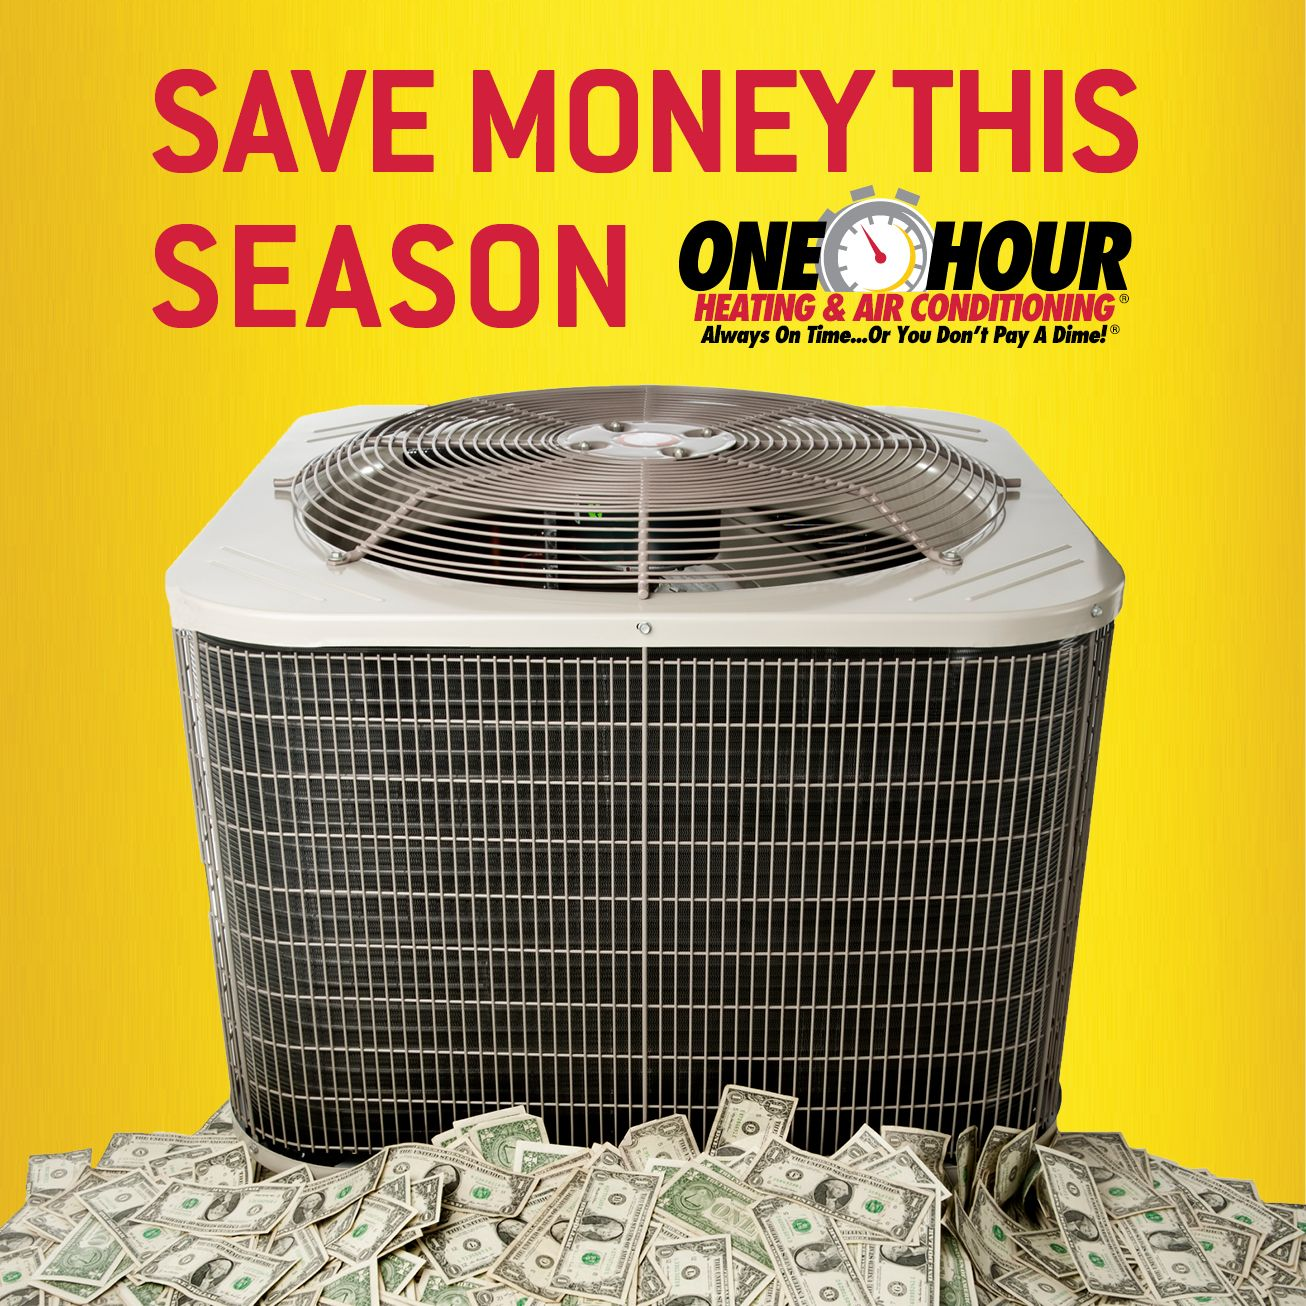 Pin by One Hour Heating & Air Conditioning on Furnaces